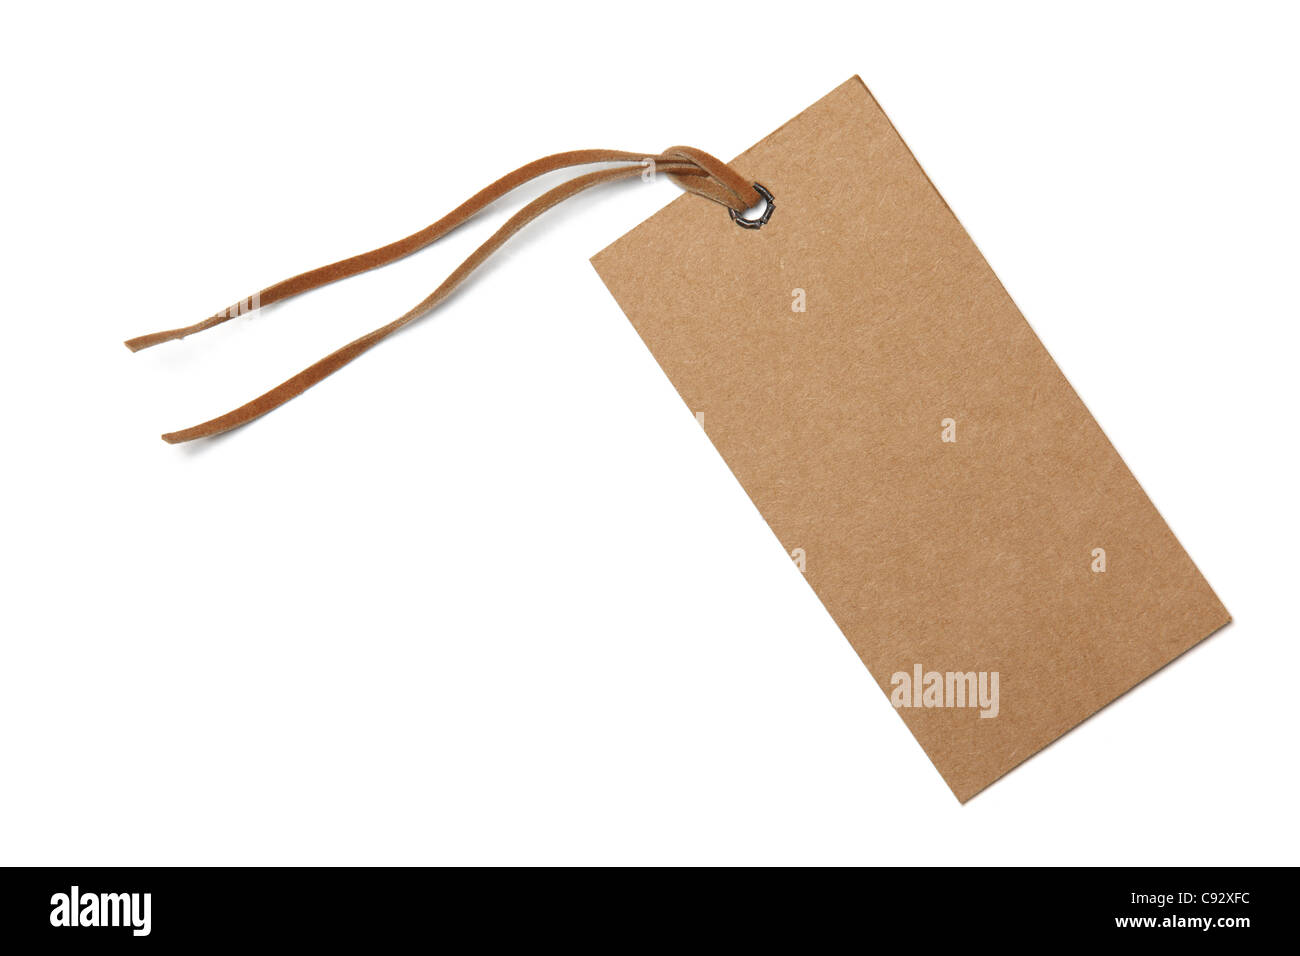 Price tag or address label with string isolated on white. - Stock Image